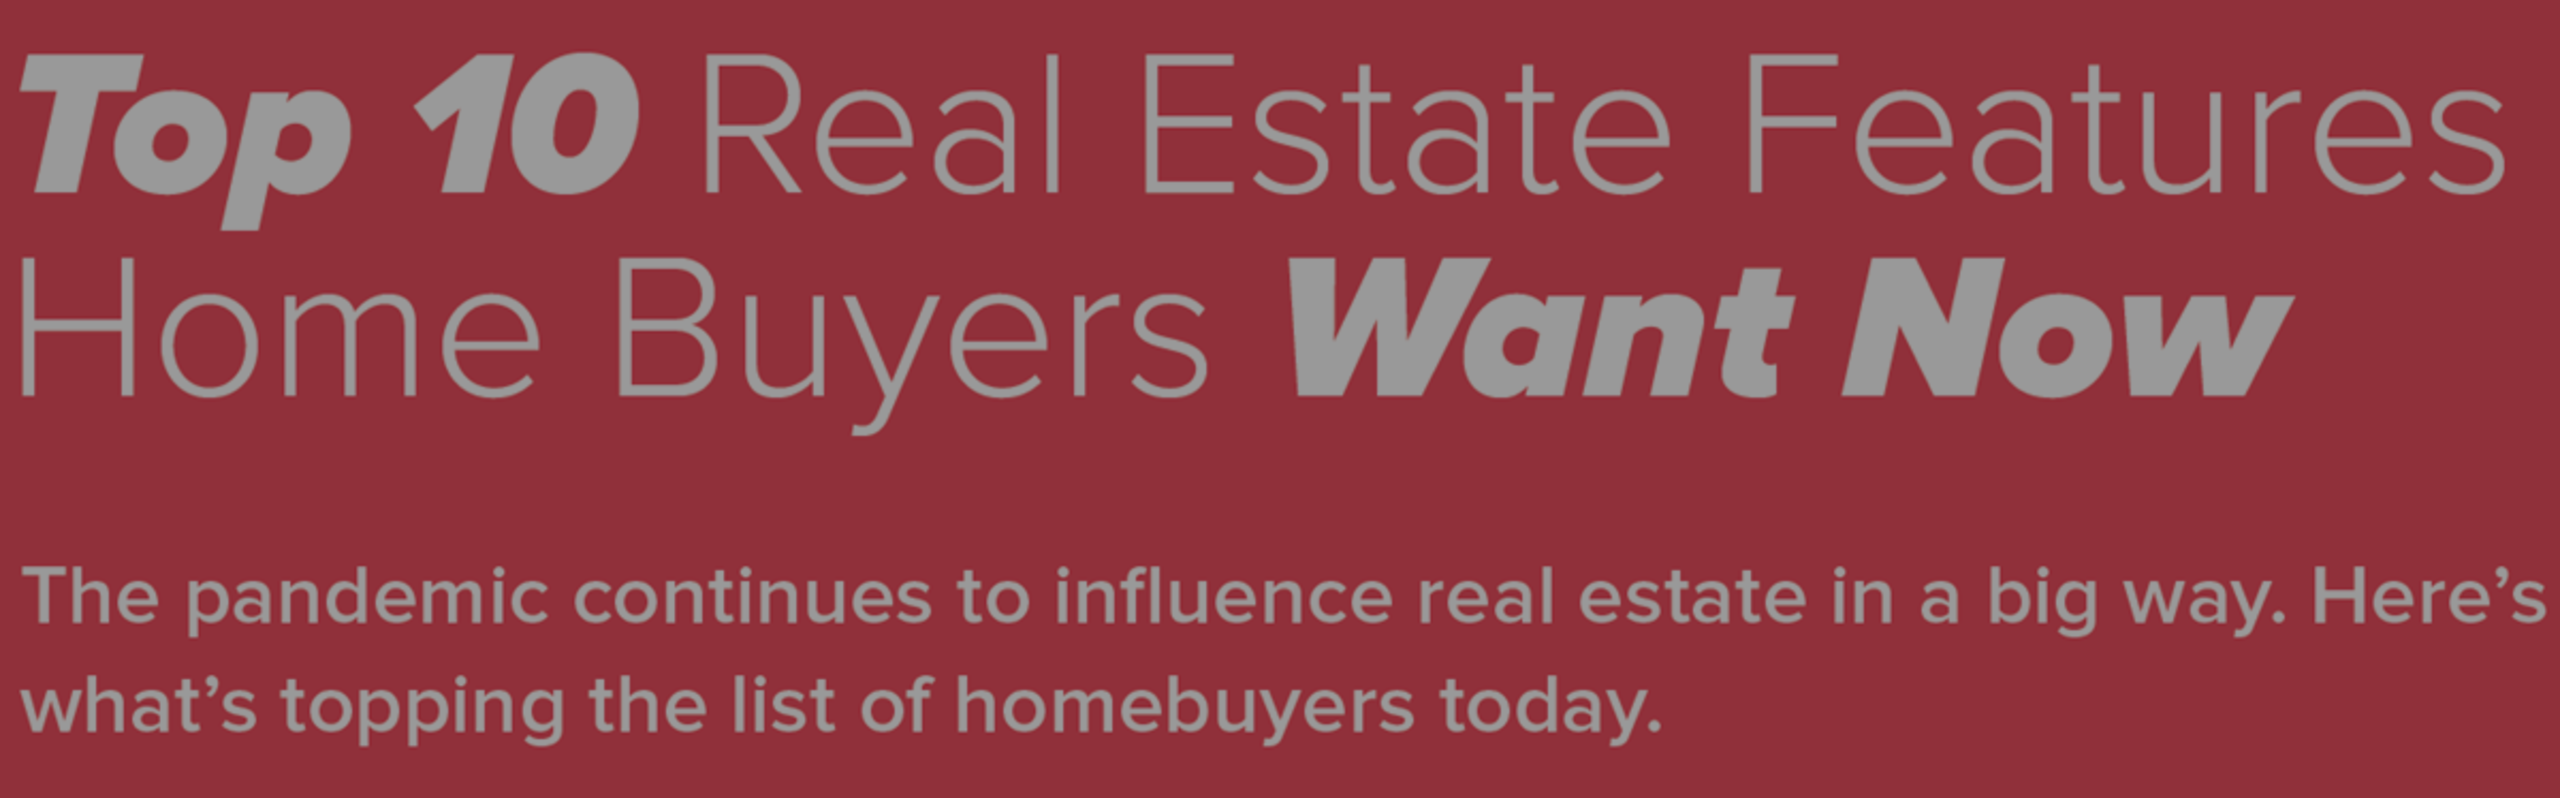 Top 10 Real Estate Features Home Buyers Want Now